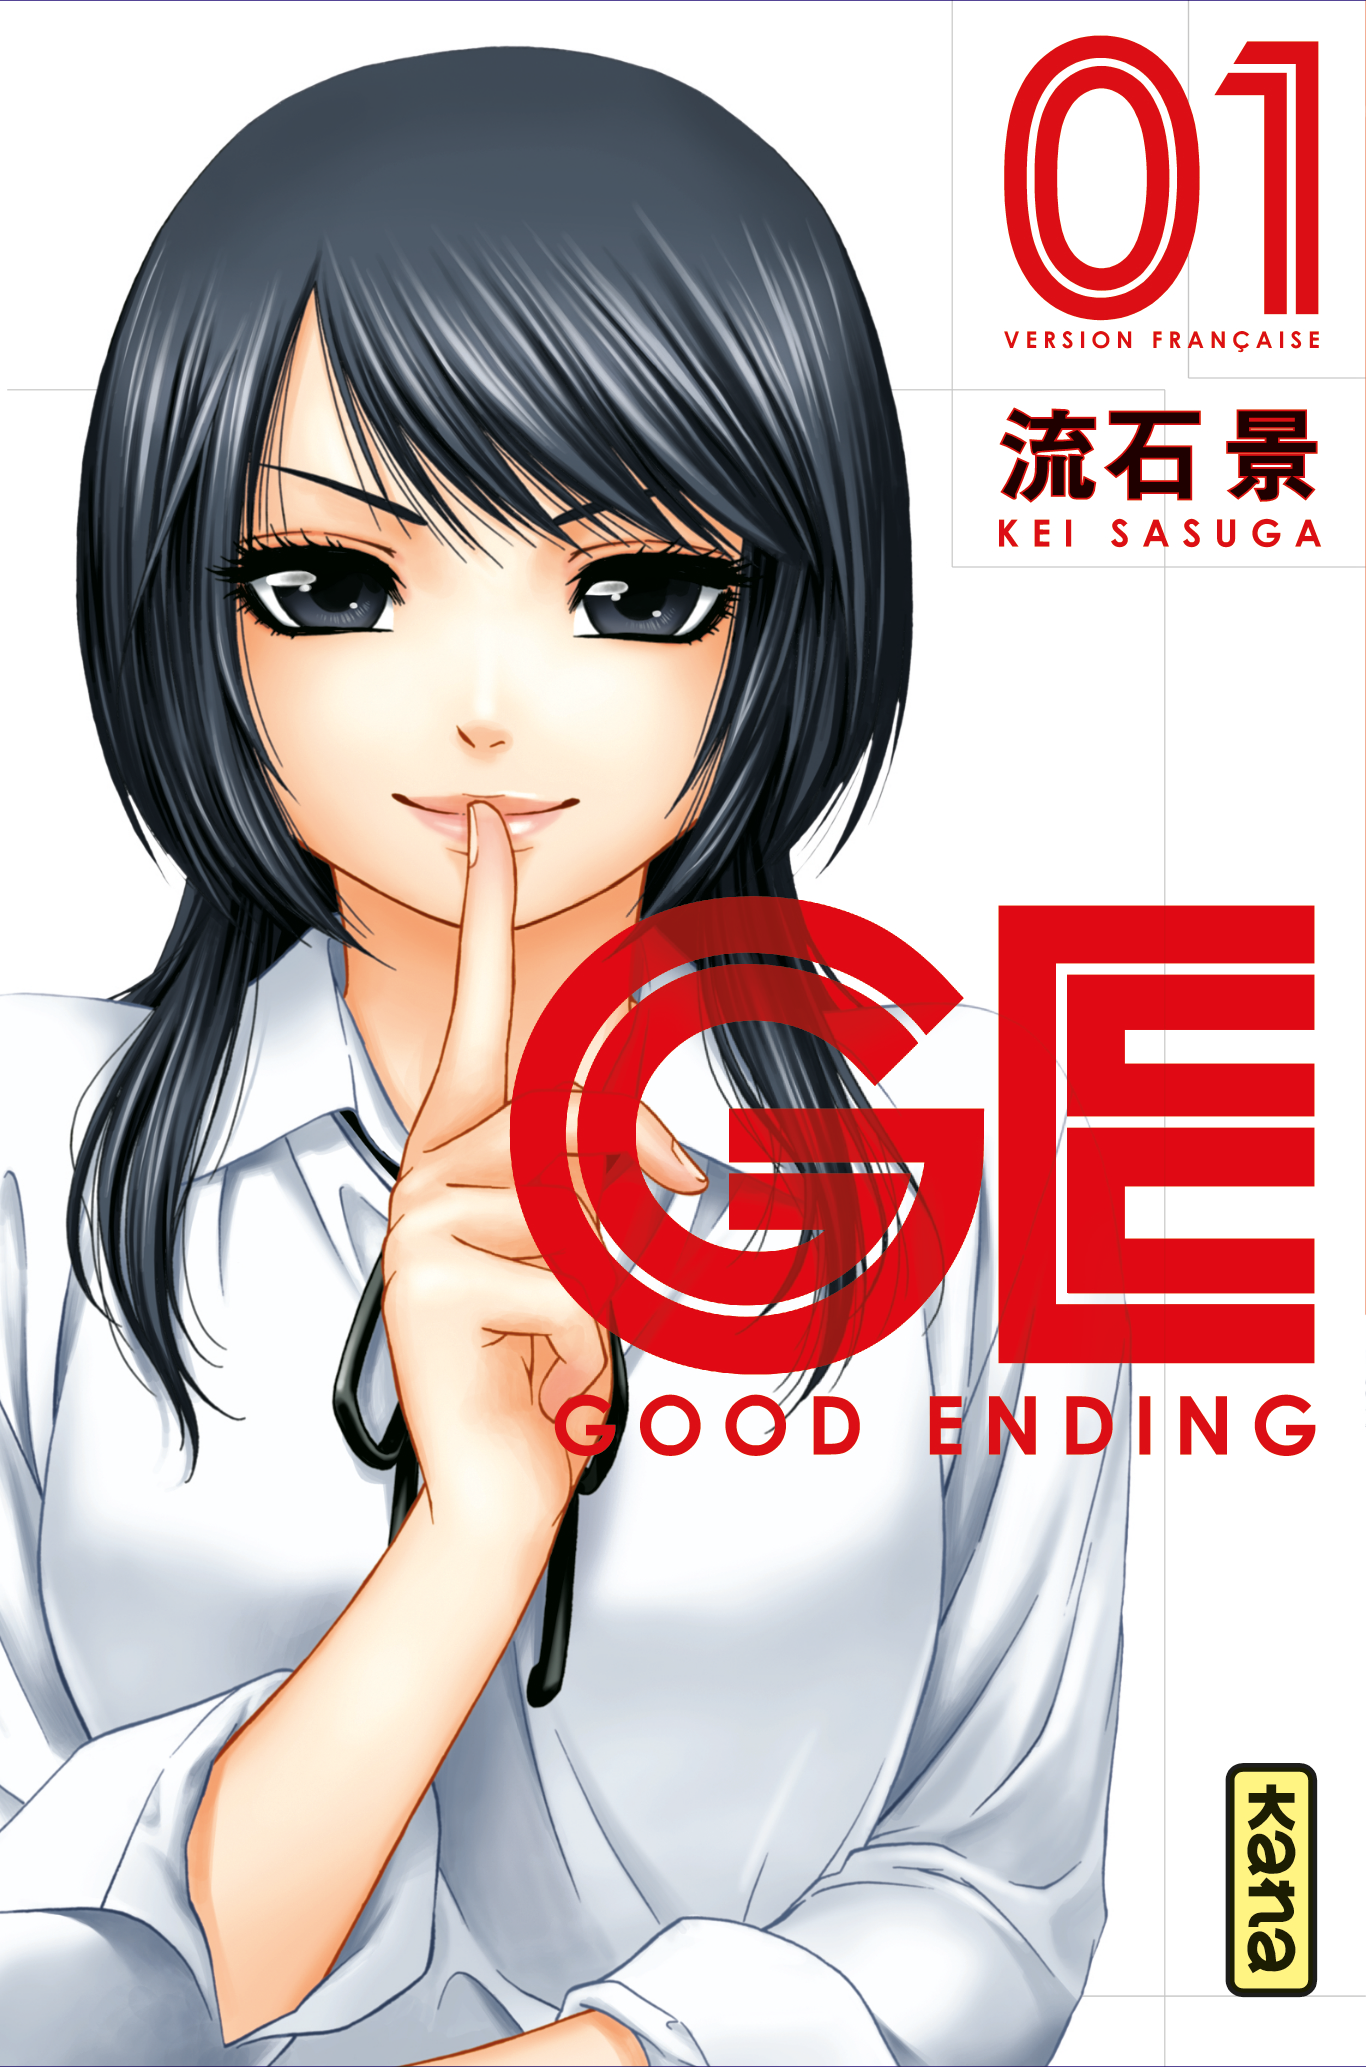 ge-good-ending-manga-volume-1-simple-560